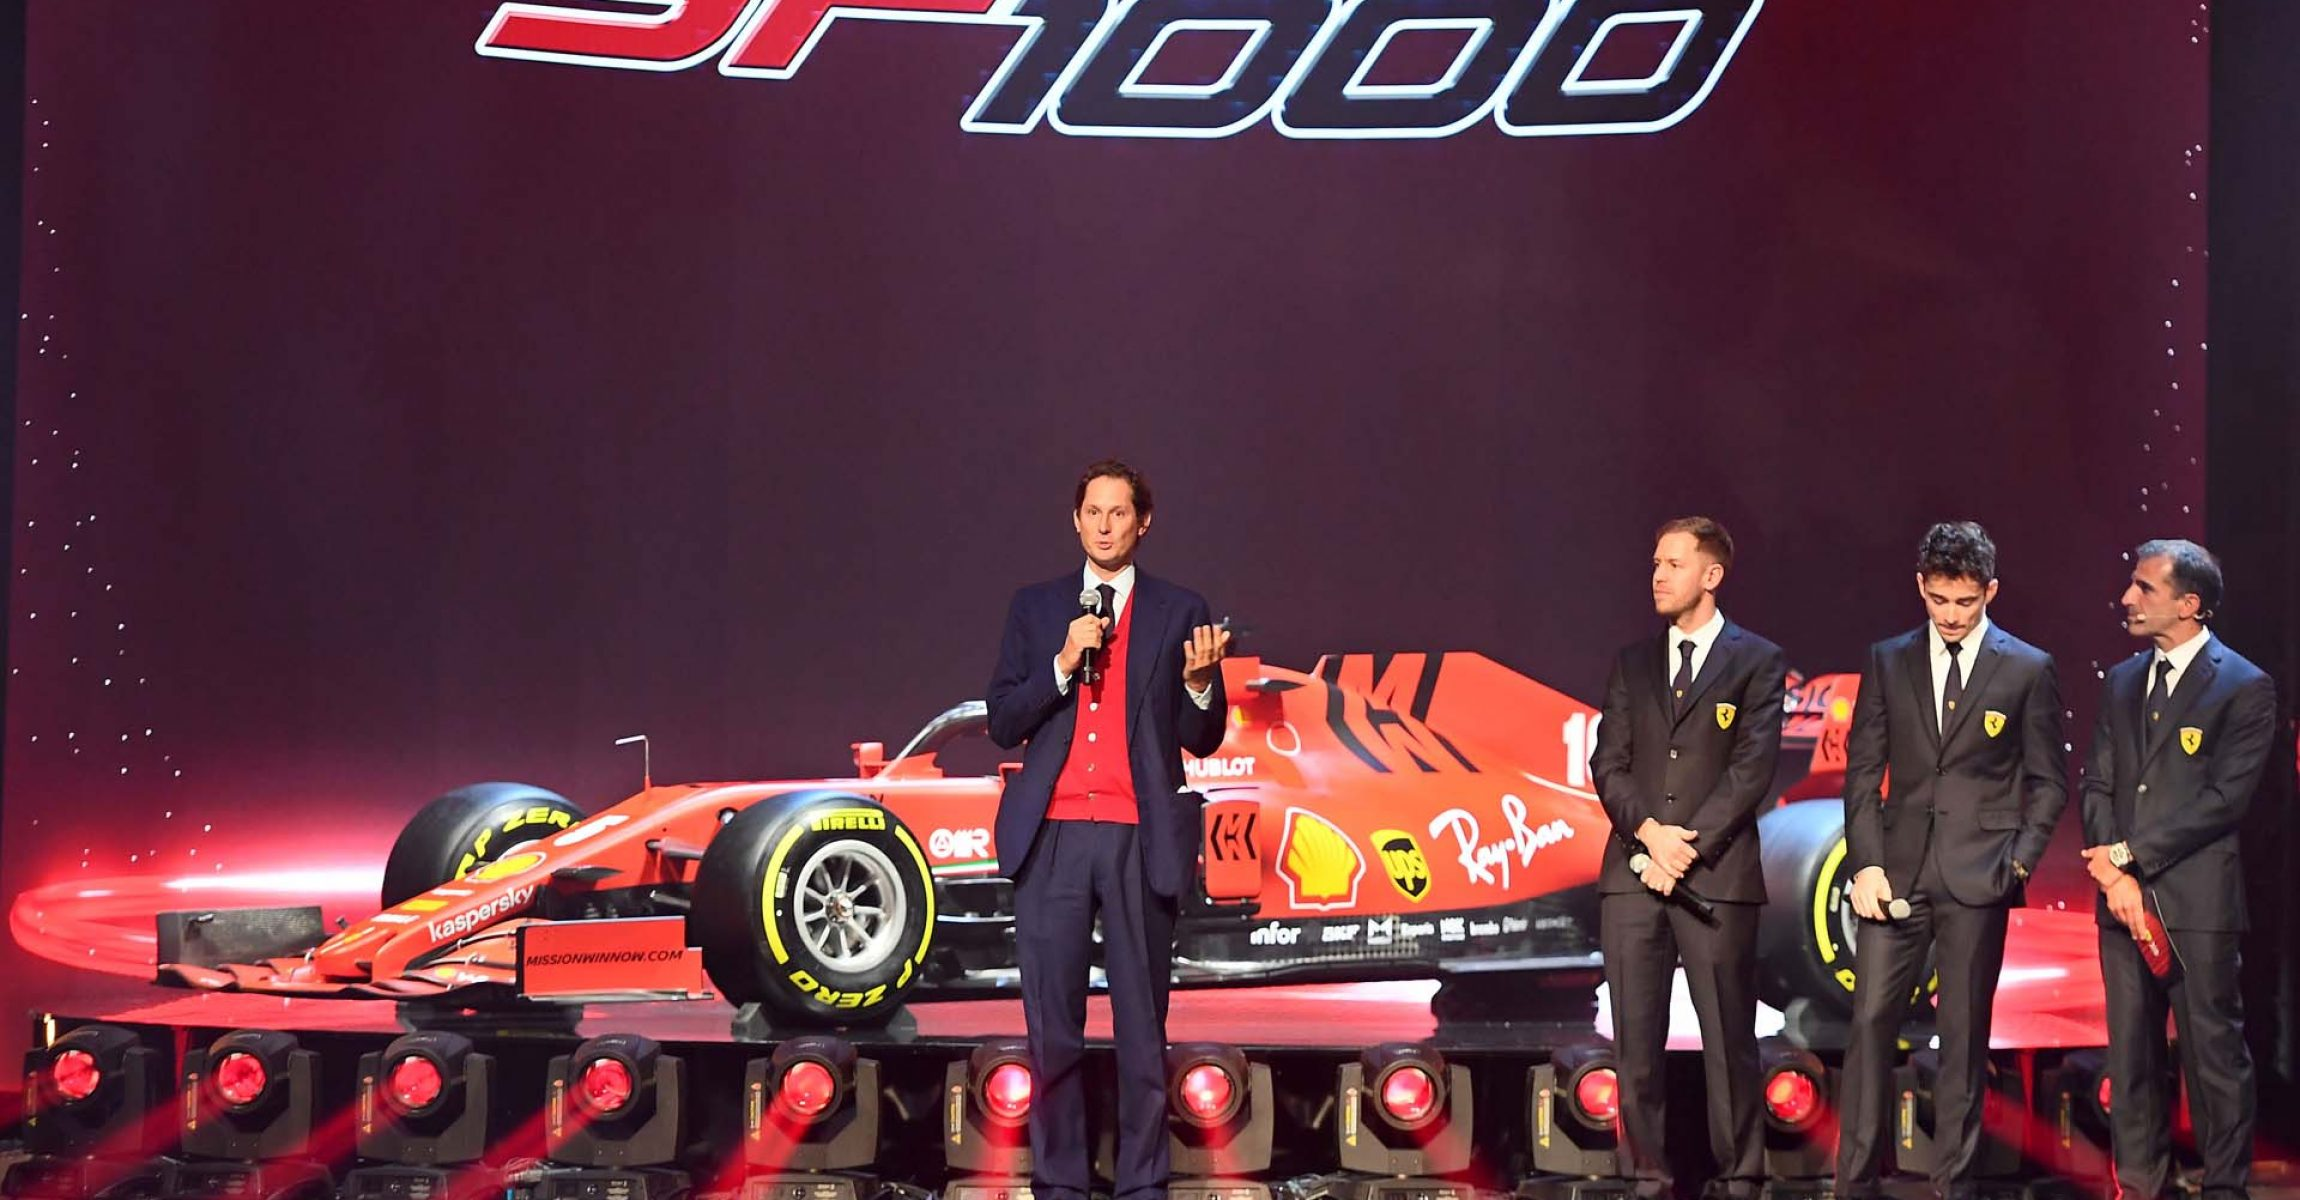 REGGIO EMILIA (ITALY) 11/02/2020 - PRESENTAZIONE FERRARI SF1000 -  credit: © Scuderia Ferrari Press Office Ferrari SF1000 launch